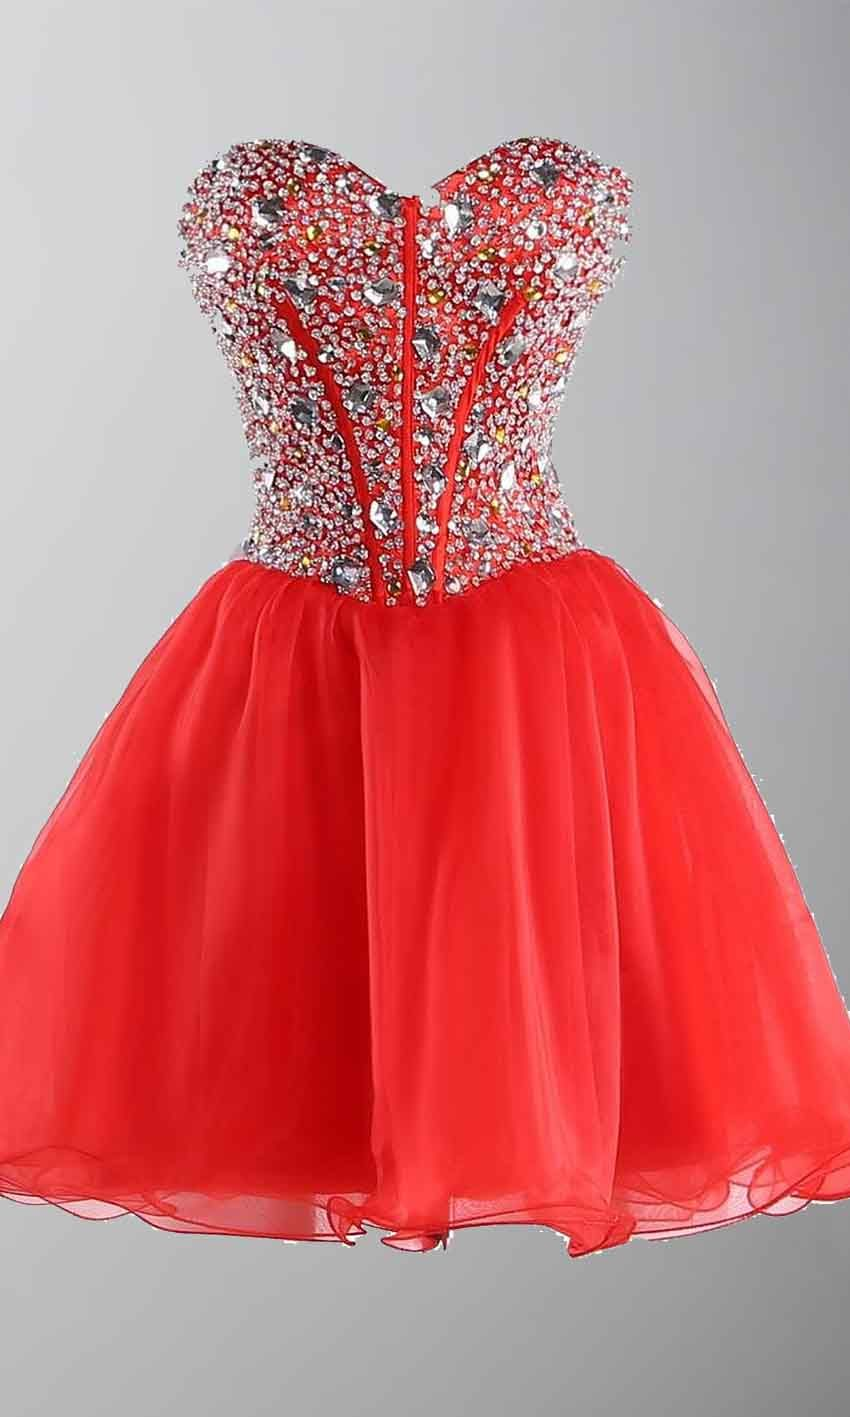 Rhinestone Sweetheart Bodice Short Red Prom Dresses UK KSP403 | uk ...